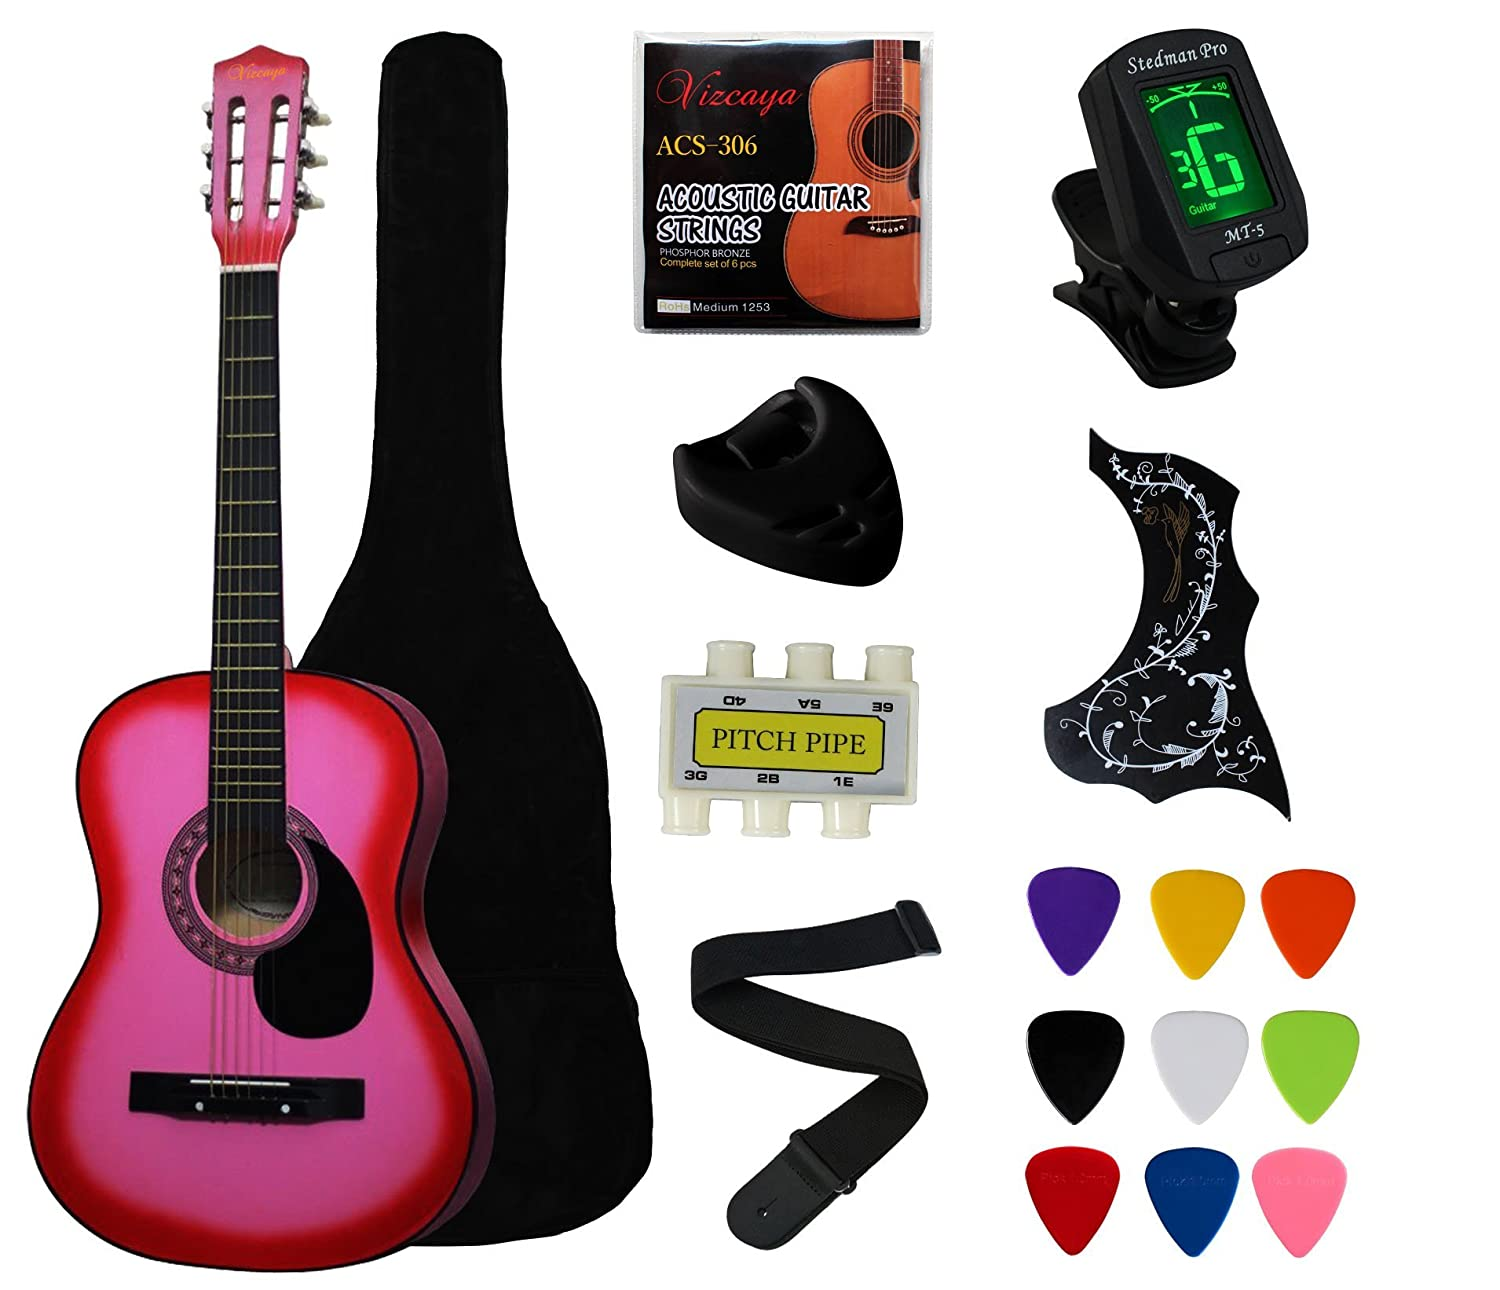 YMC 38 Blue Beginner Acoustic Guitar Starter Package Student Guitar with Gig Bag,Strap, 3 Thickness 9 Picks,2 Pickguards,Pick Holder, Extra Strings, Electronic Tuner -Blue BG38-BU-AKIT